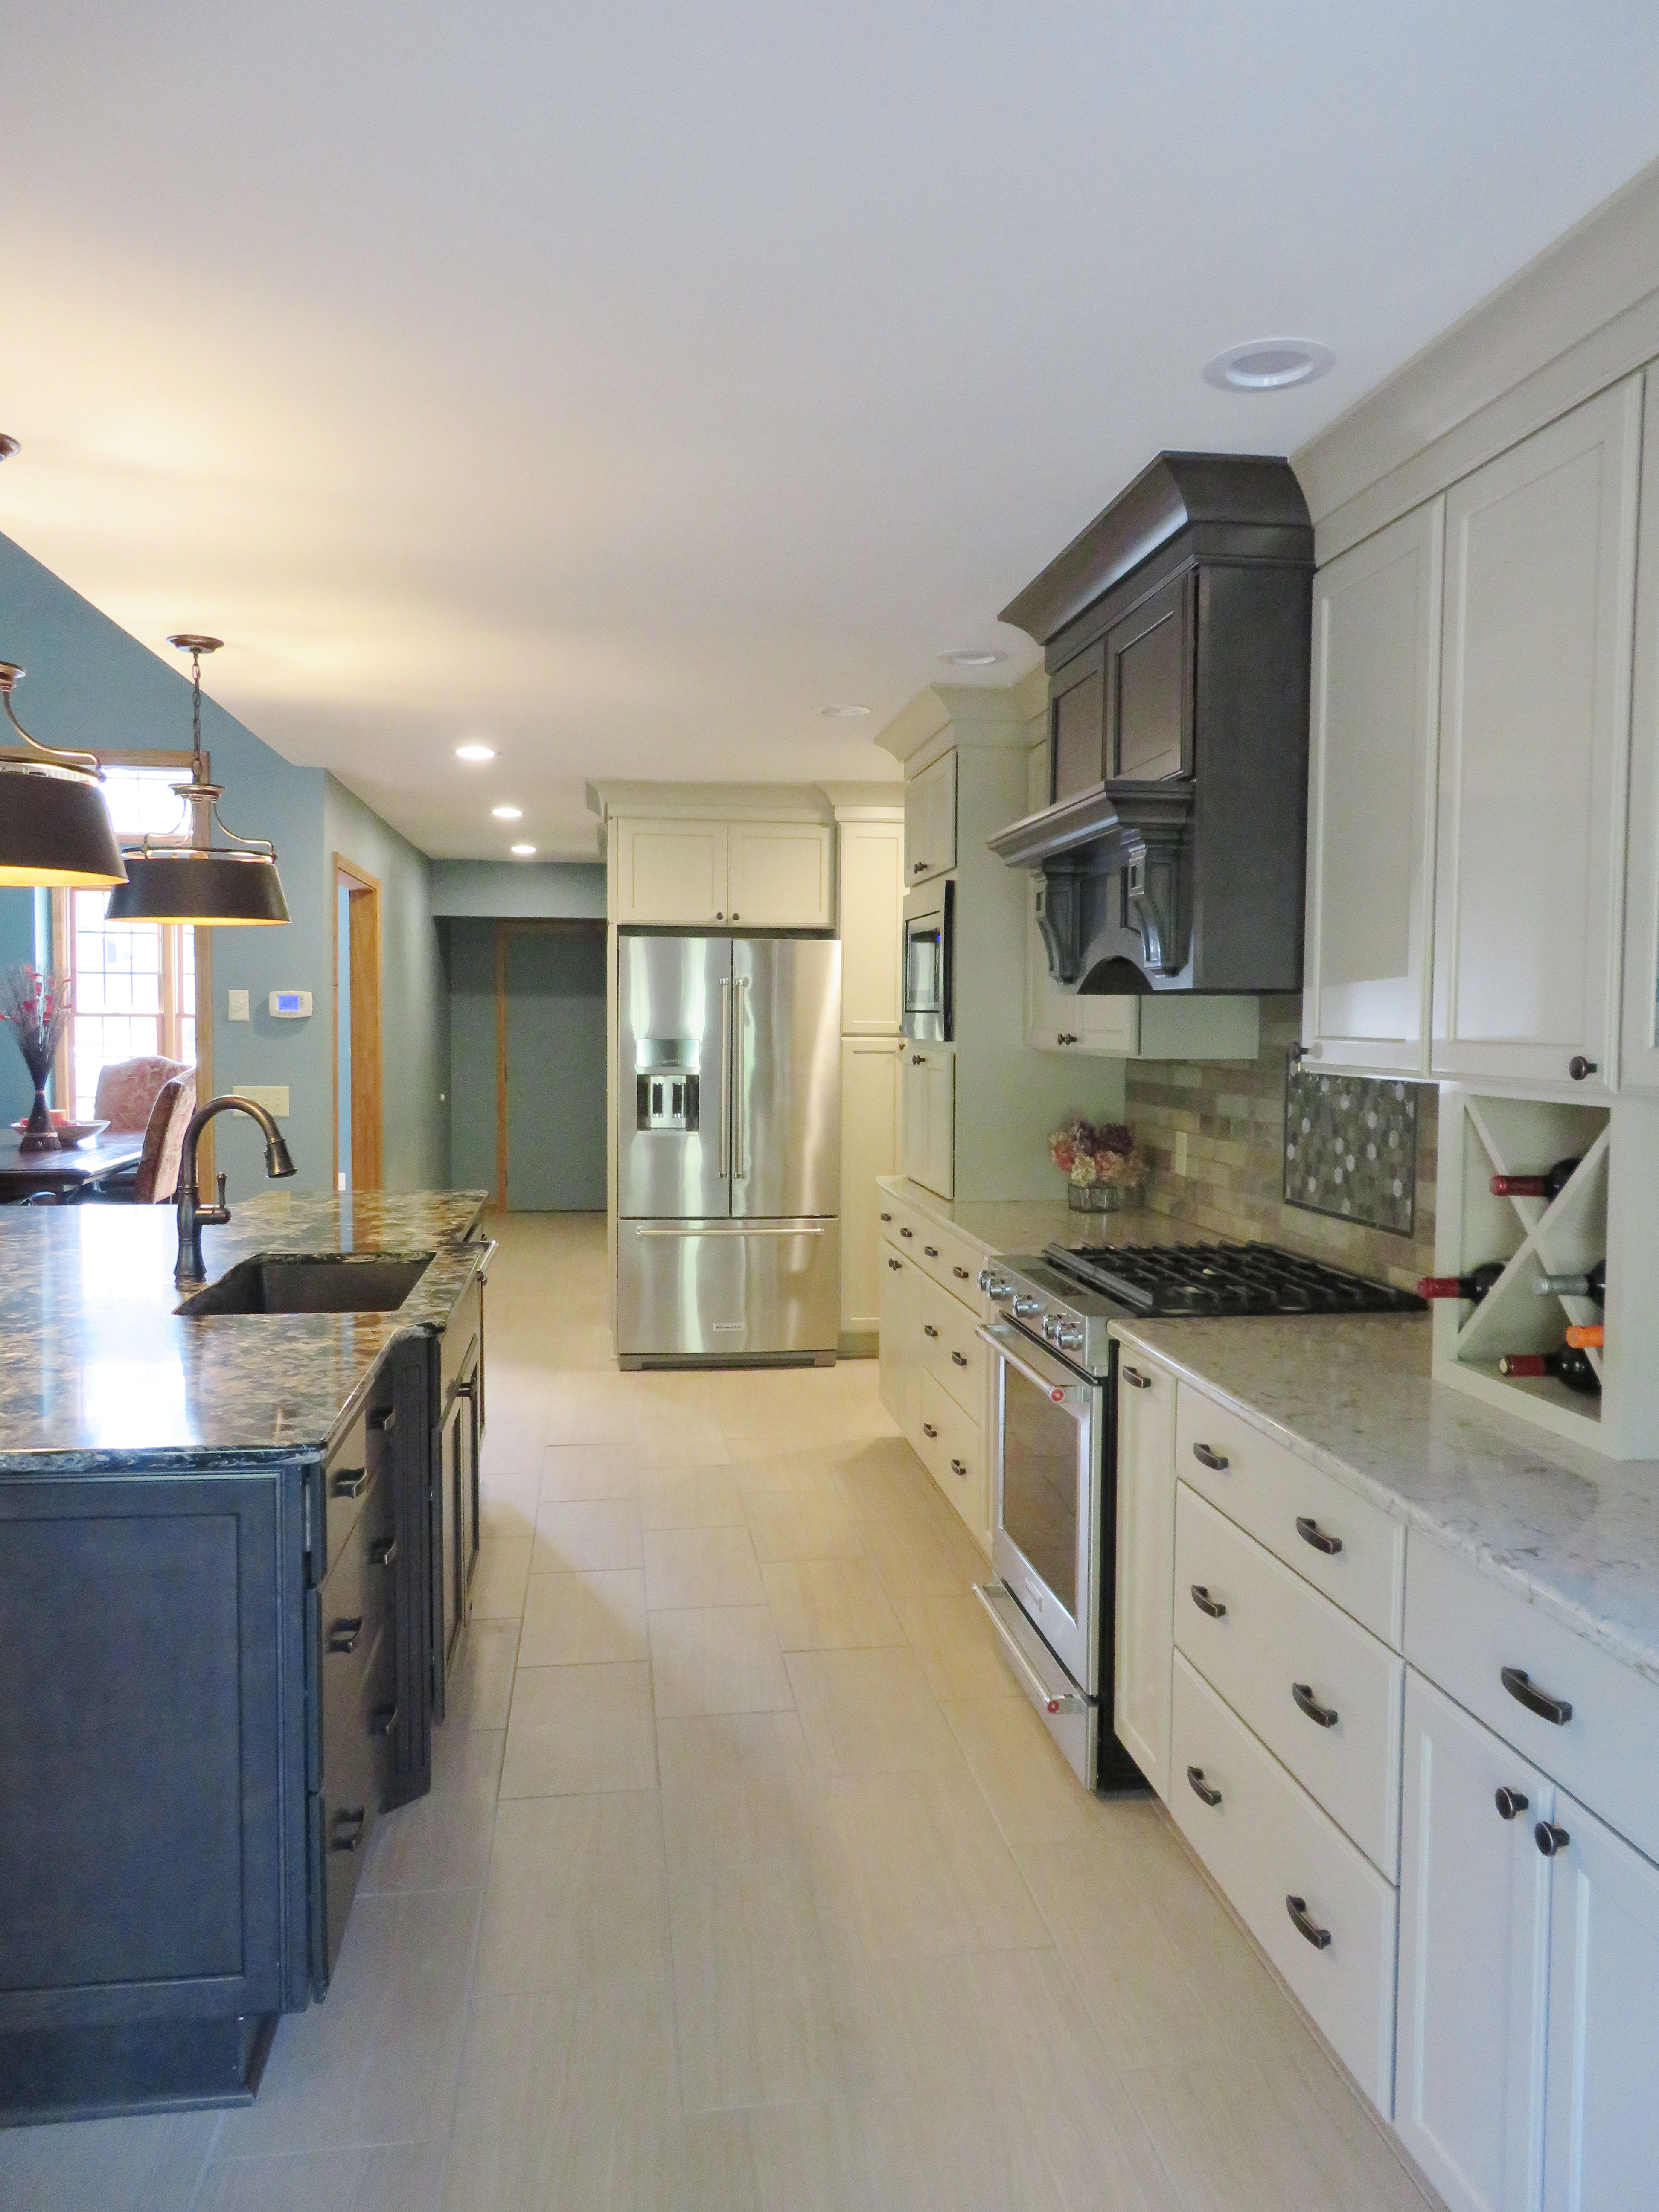 pin by straight line design on kitchen designs kitchen design rustic kitchen design kitchen on kitchen cabinets vertical lines id=40212